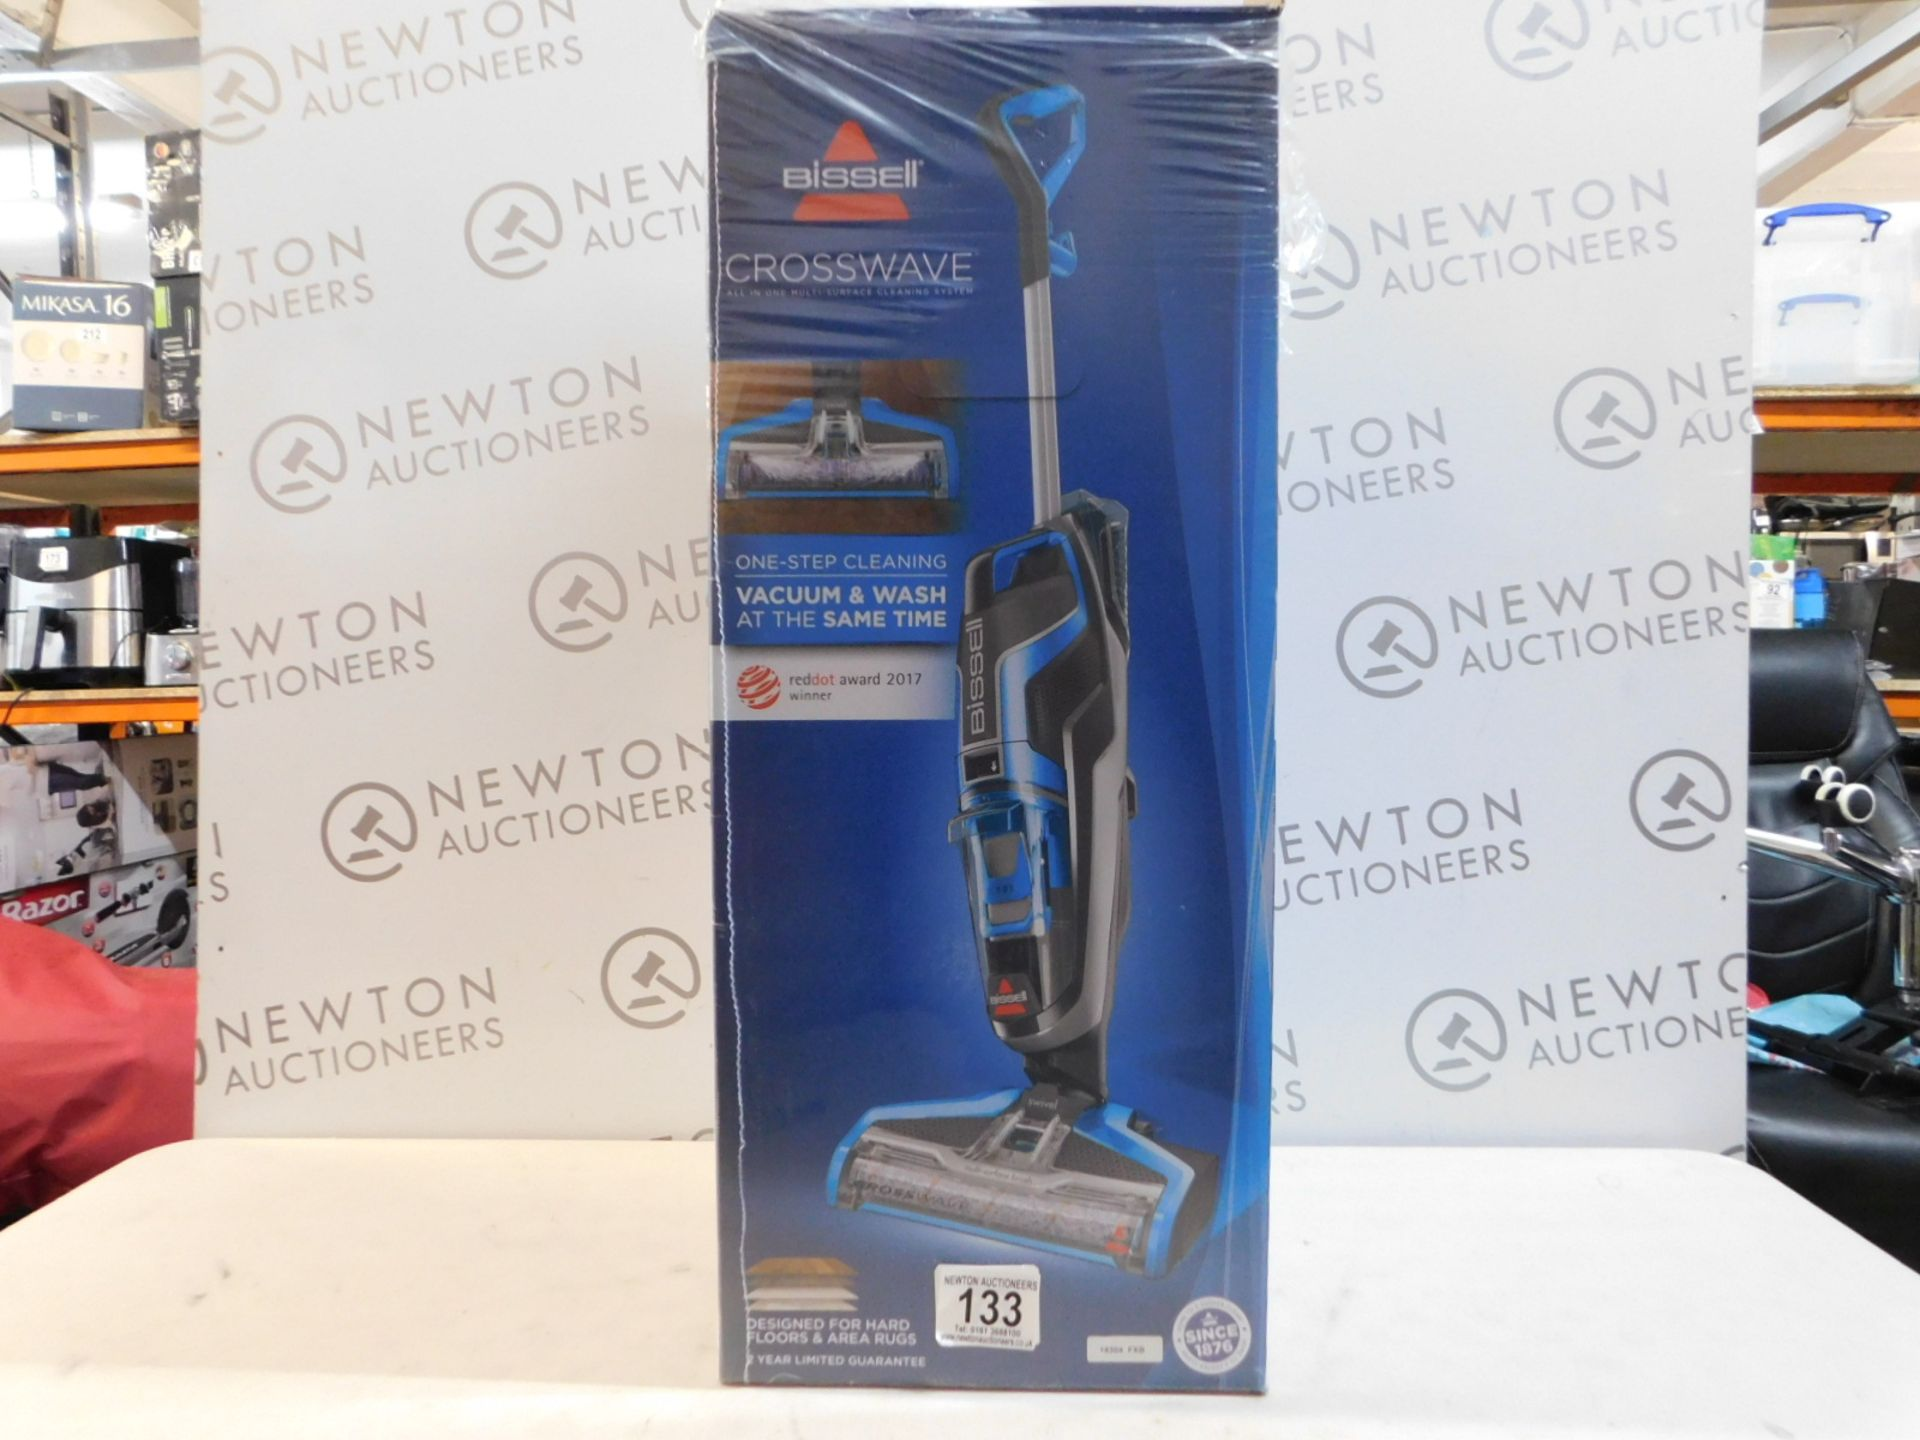 Lot 133 - 1 BOXED BISSELL CROSSWAVE ALL IN ONE MULTI-SURFACE CLEANING SYSTEM RRP £249.99